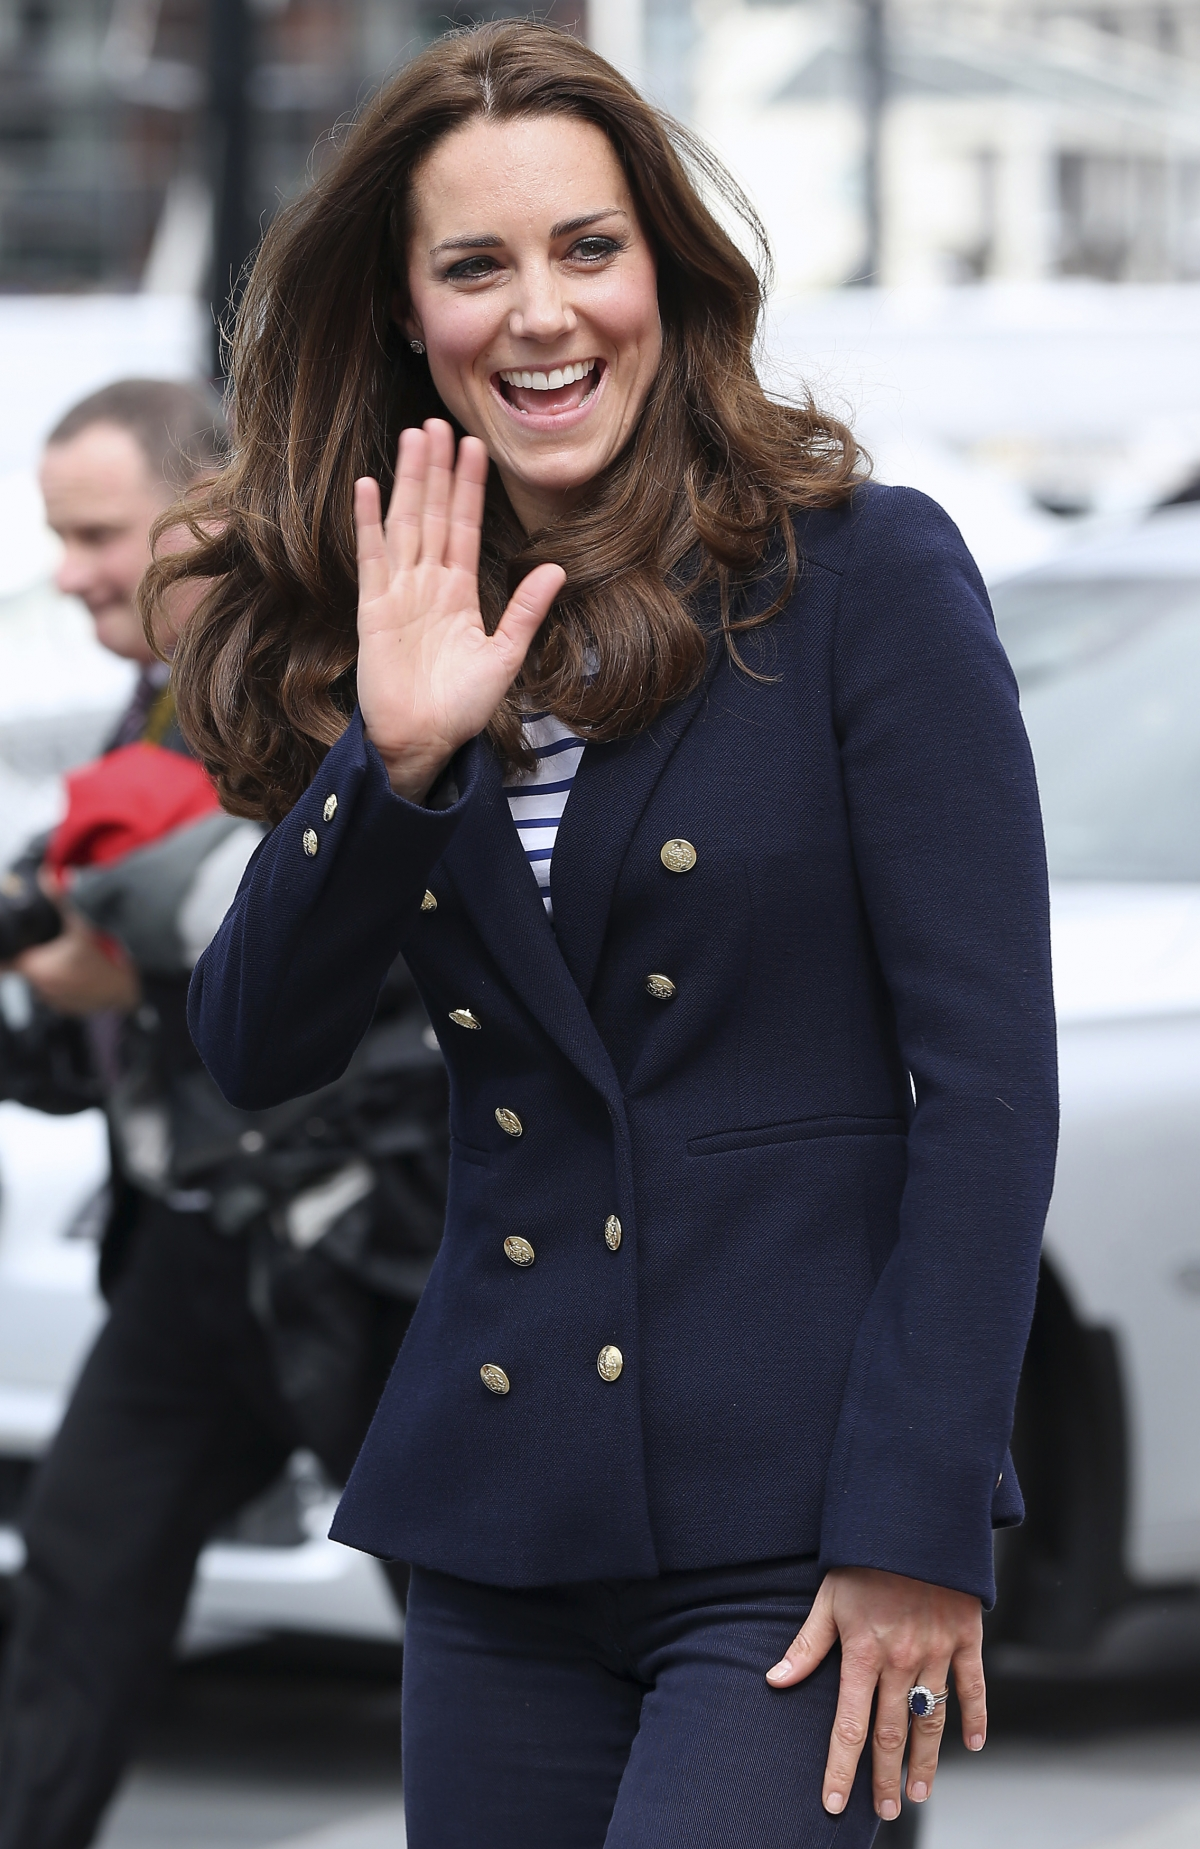 Kate Middleton Repeats Outfit On Royal Tour Dress No Five In Pictures